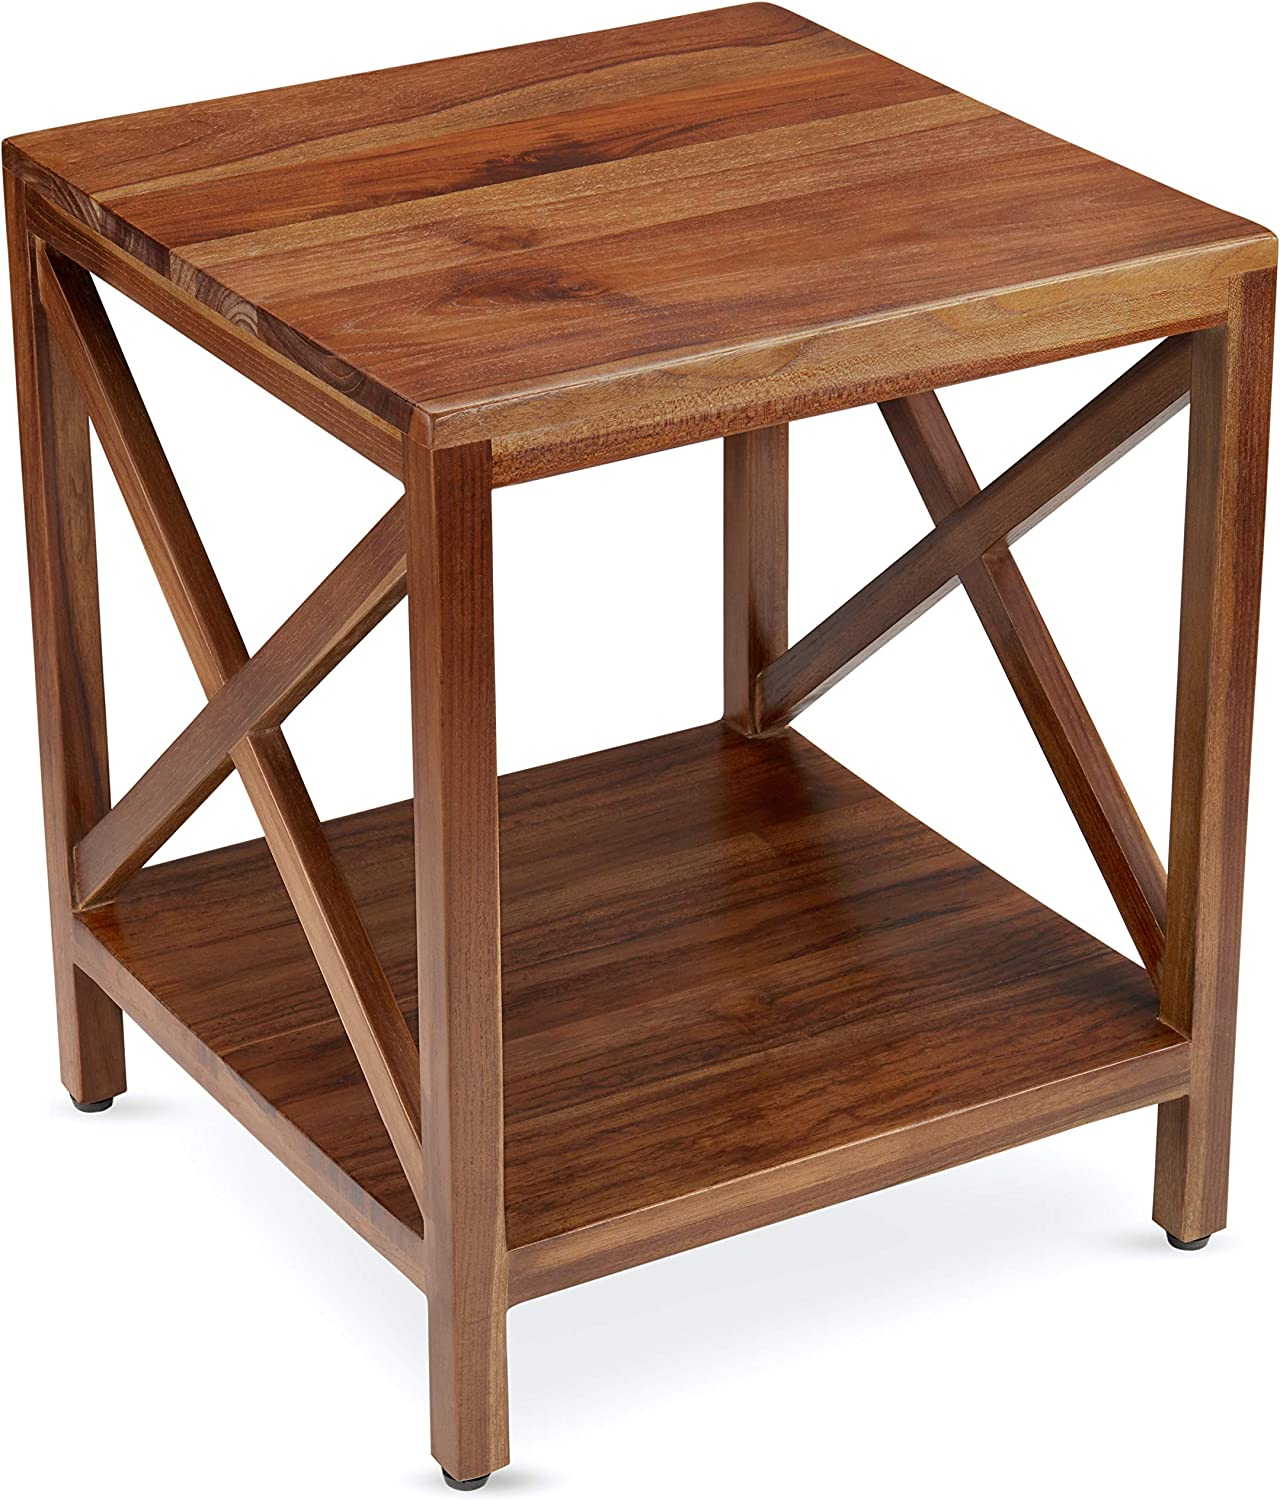 TeakCraft Teak End Table with Shelf Wood Fully favorite Asse Solid store